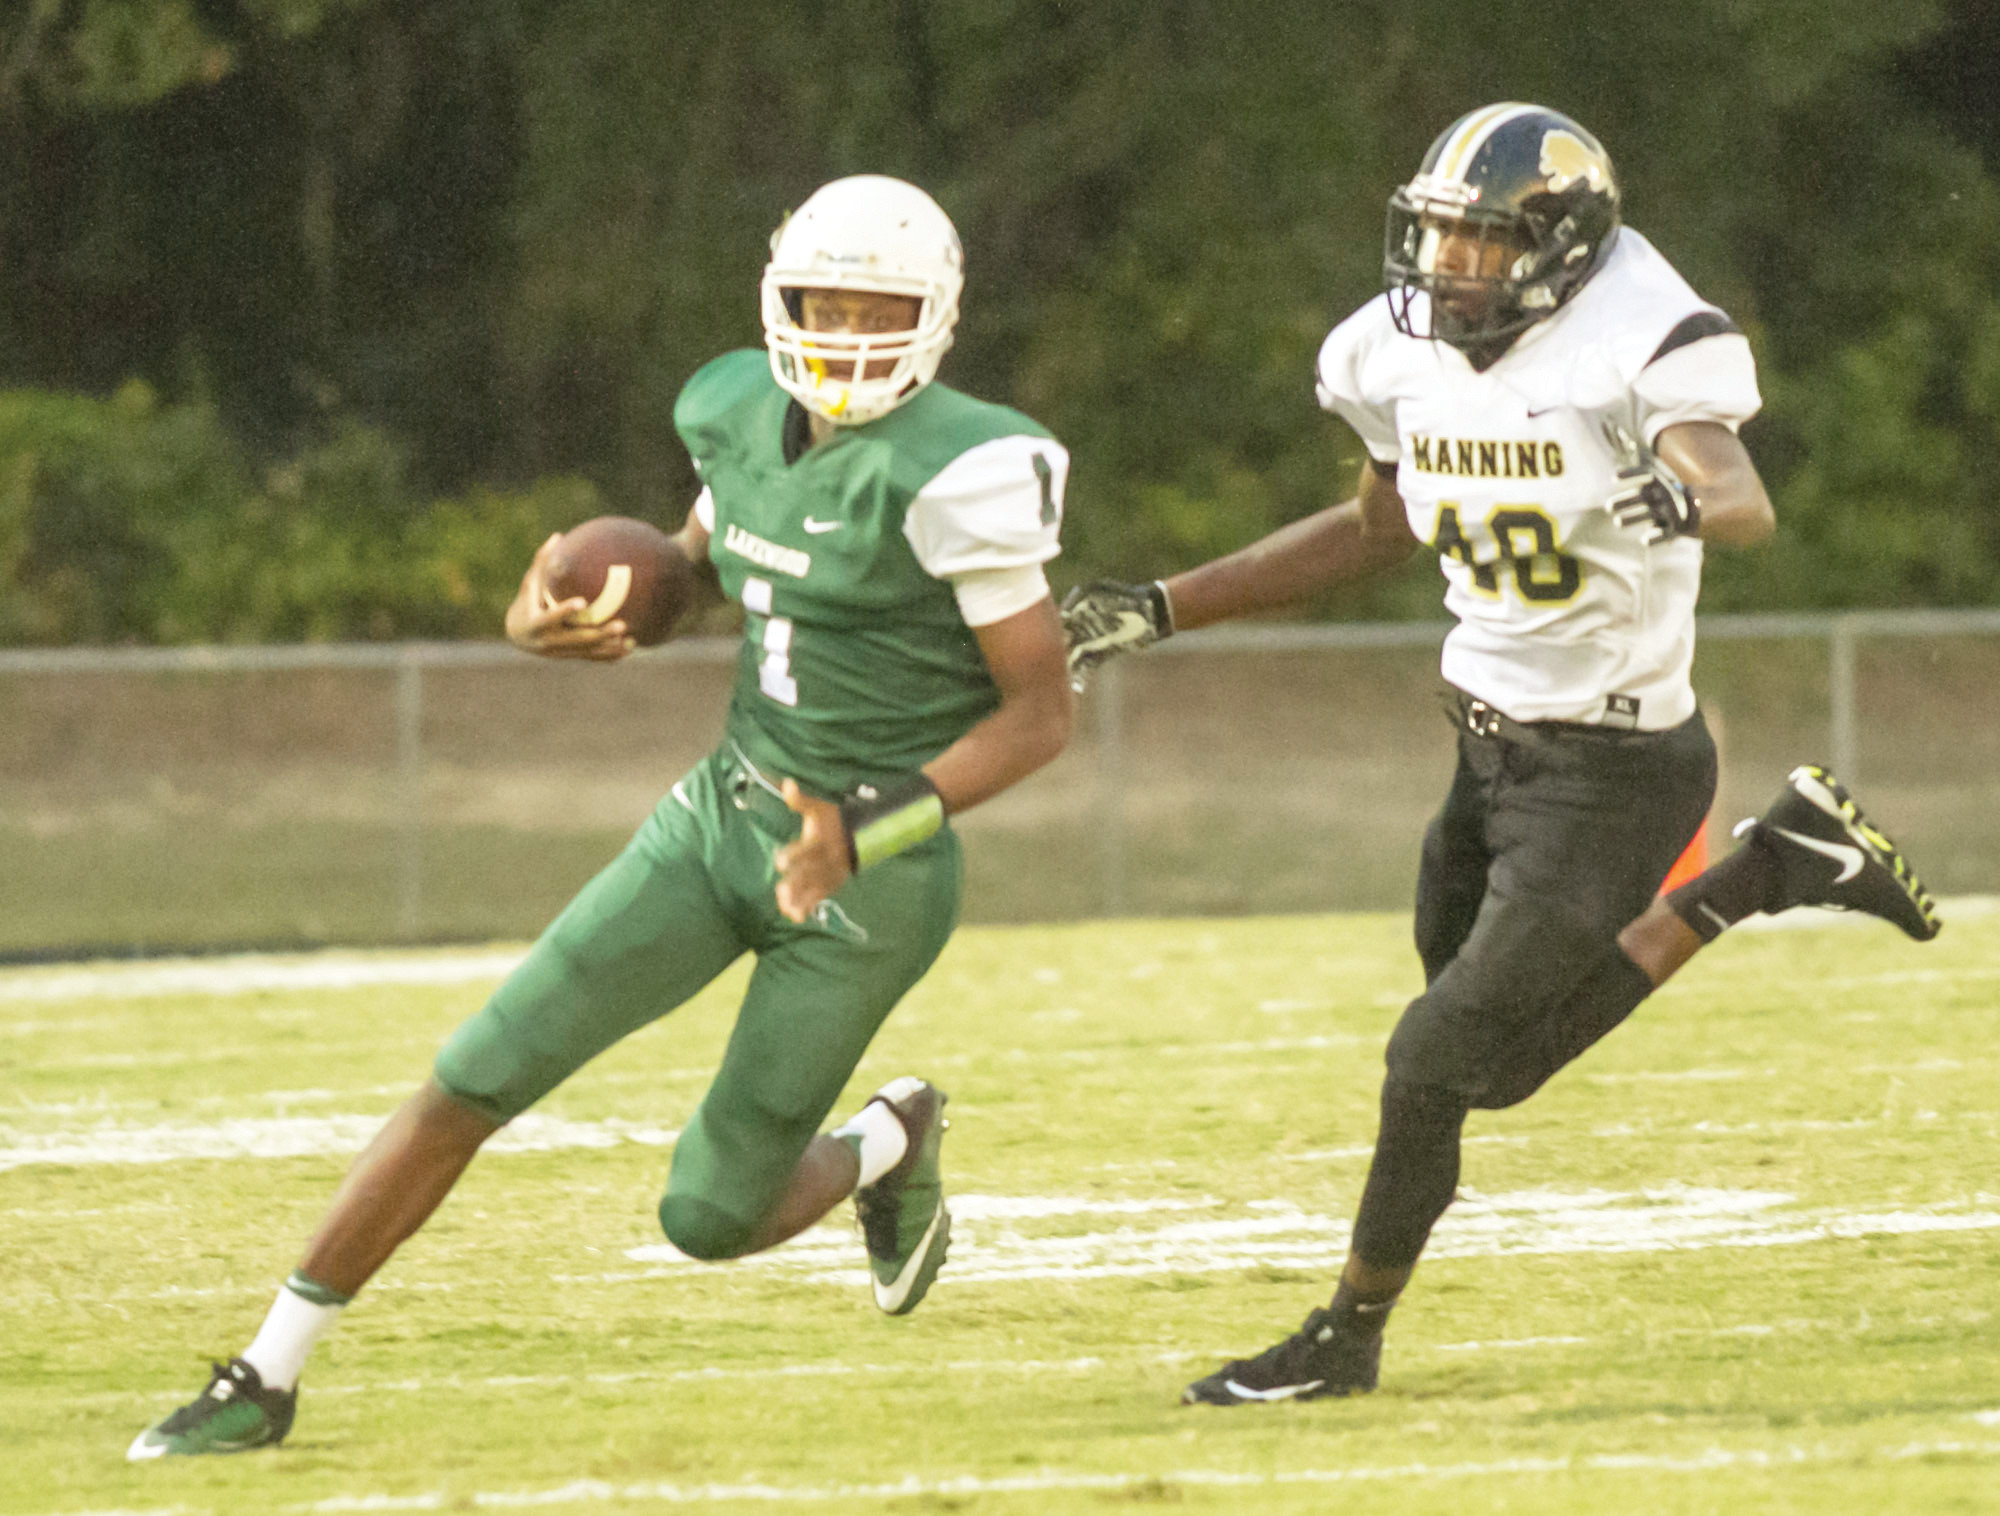 Lakewood quarterback Malik Richardson (1) and the rest of the Gators face county rival Sumter today at Memorial Stadium at 7:30 p.m. with each team looking to rebound from disappointing losses.